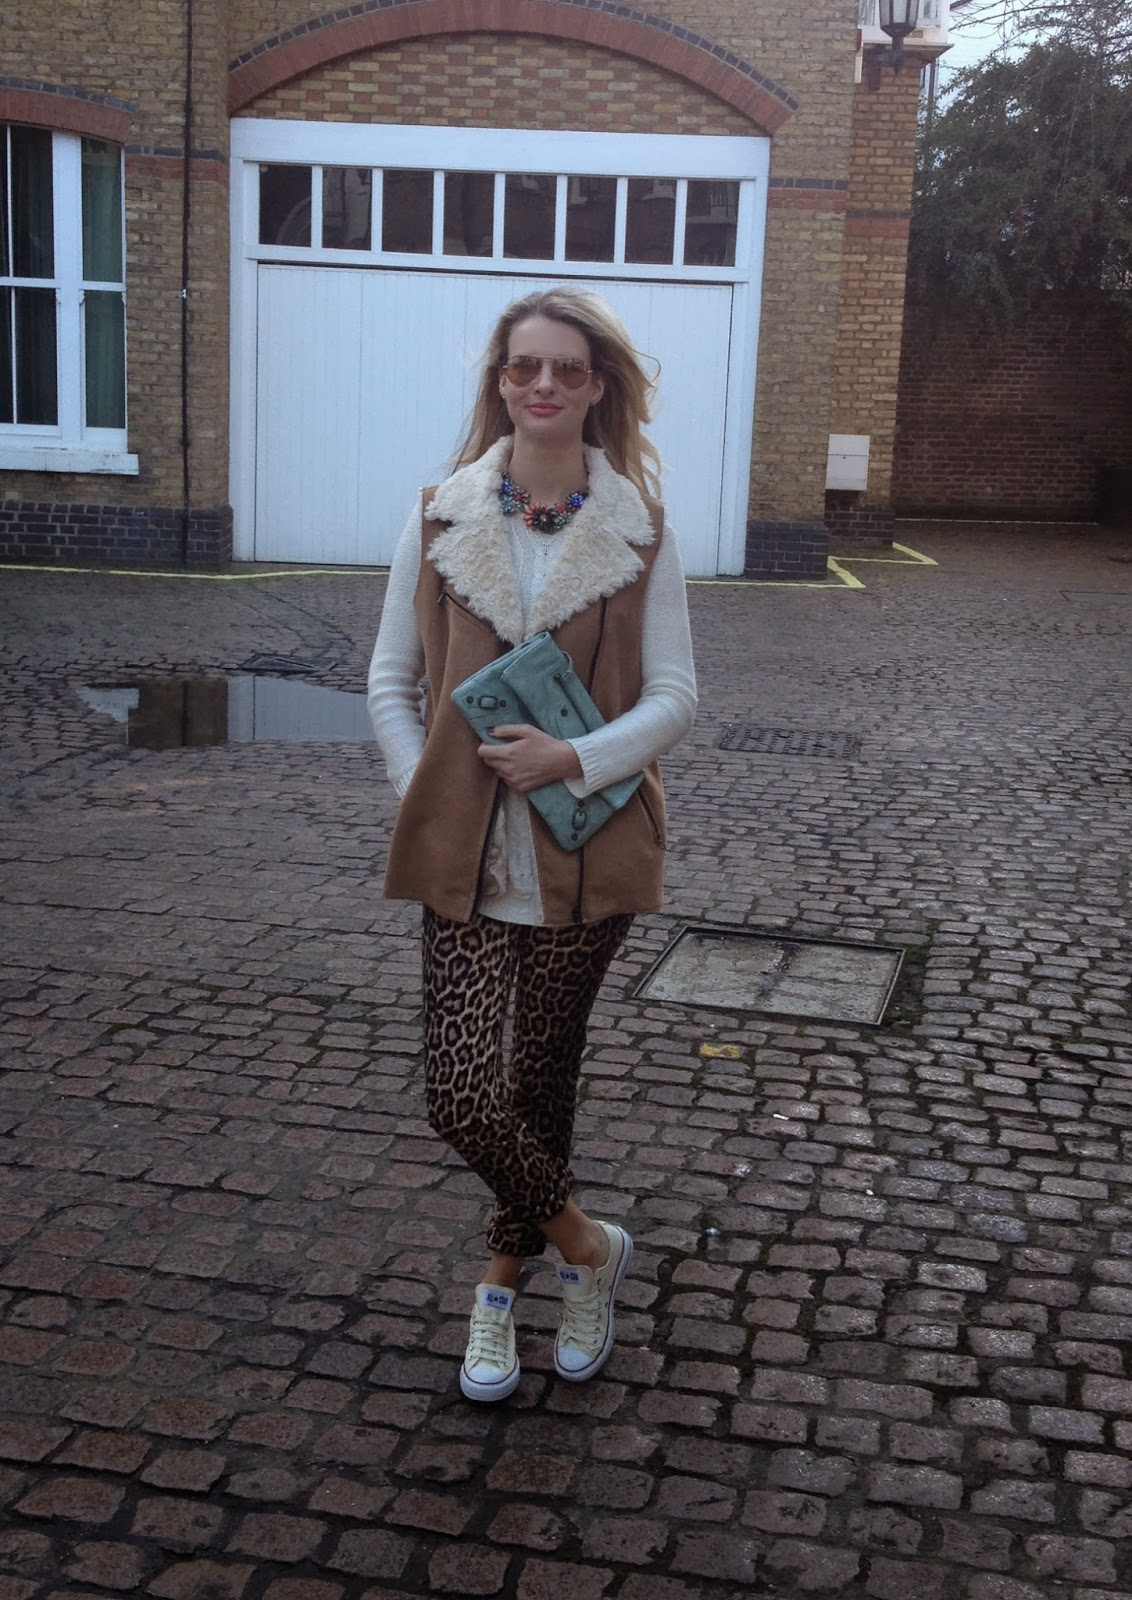 zara leopard print trousers, leopard print pants, leopard print, fur gilet, zara fur gilet, sheinside gilet, balenciaga, balenciaga clutch, balenciaga classic envelope, converse, trainers, street style, fashion blogger, london fashion blogger